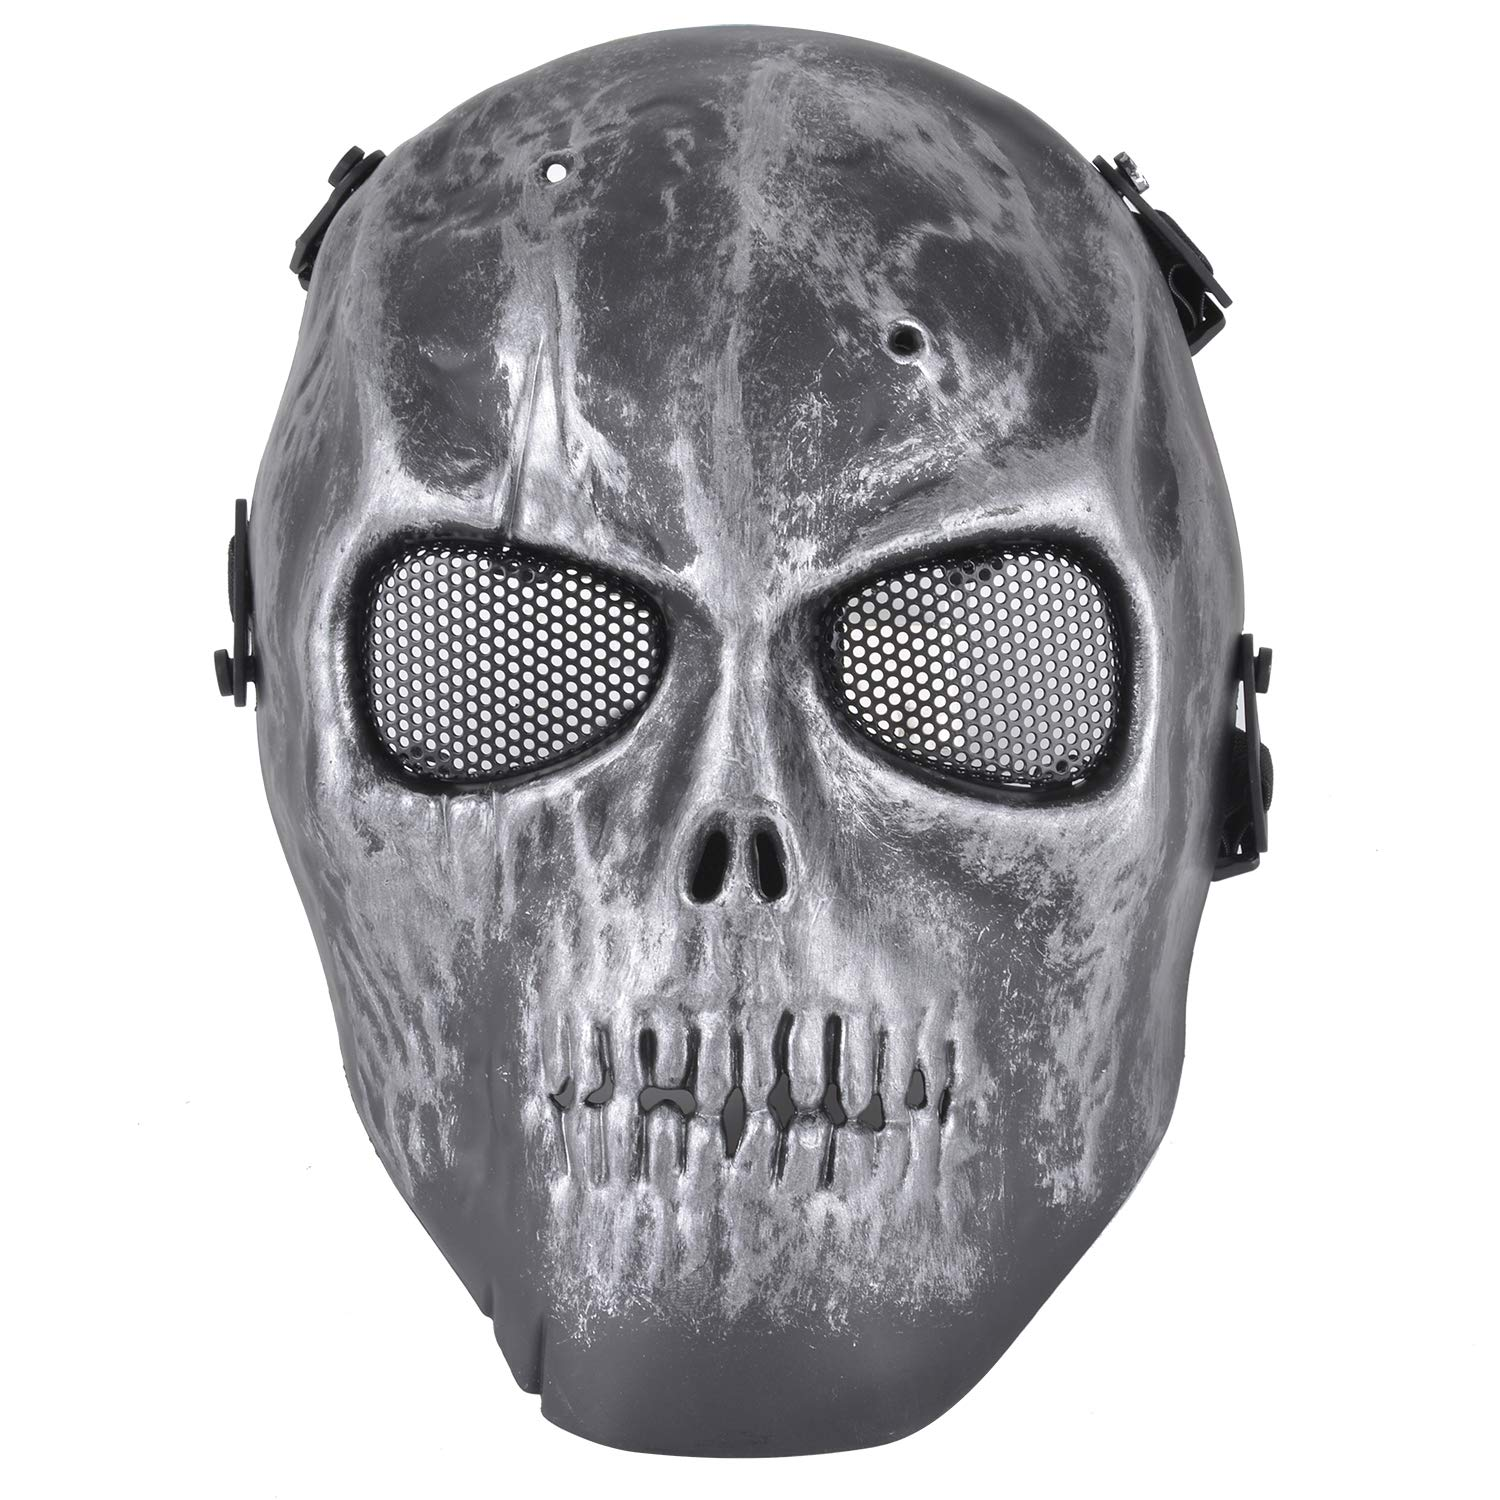 Fansport Halloween Costure Skull Skeleton Mask with Hooded  cloak